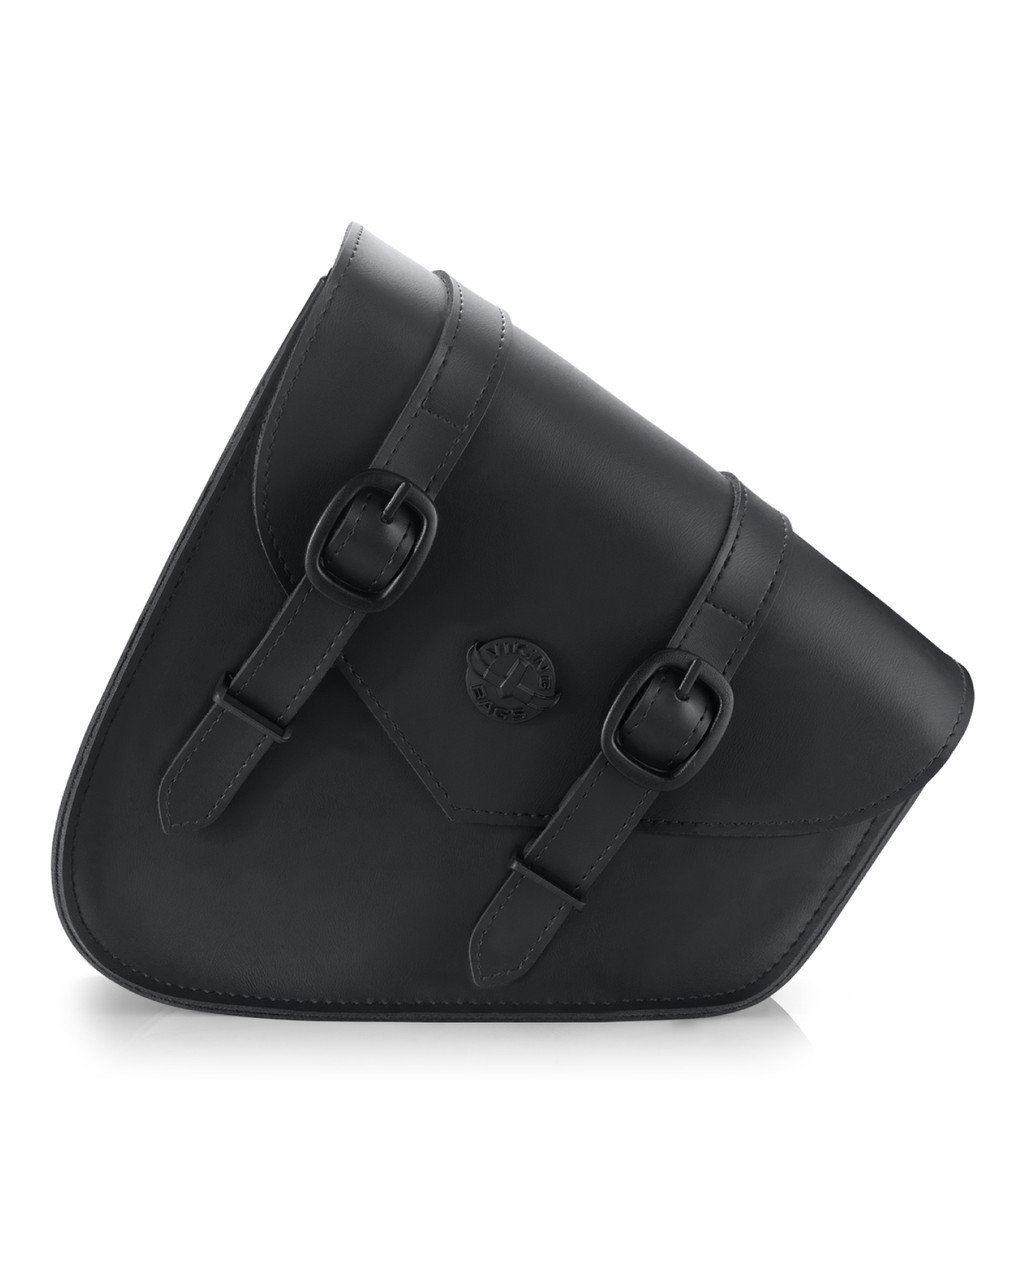 Viking Dark Age Plain Leather Motorcycle Swing arm Bag For Harley Softail Front View